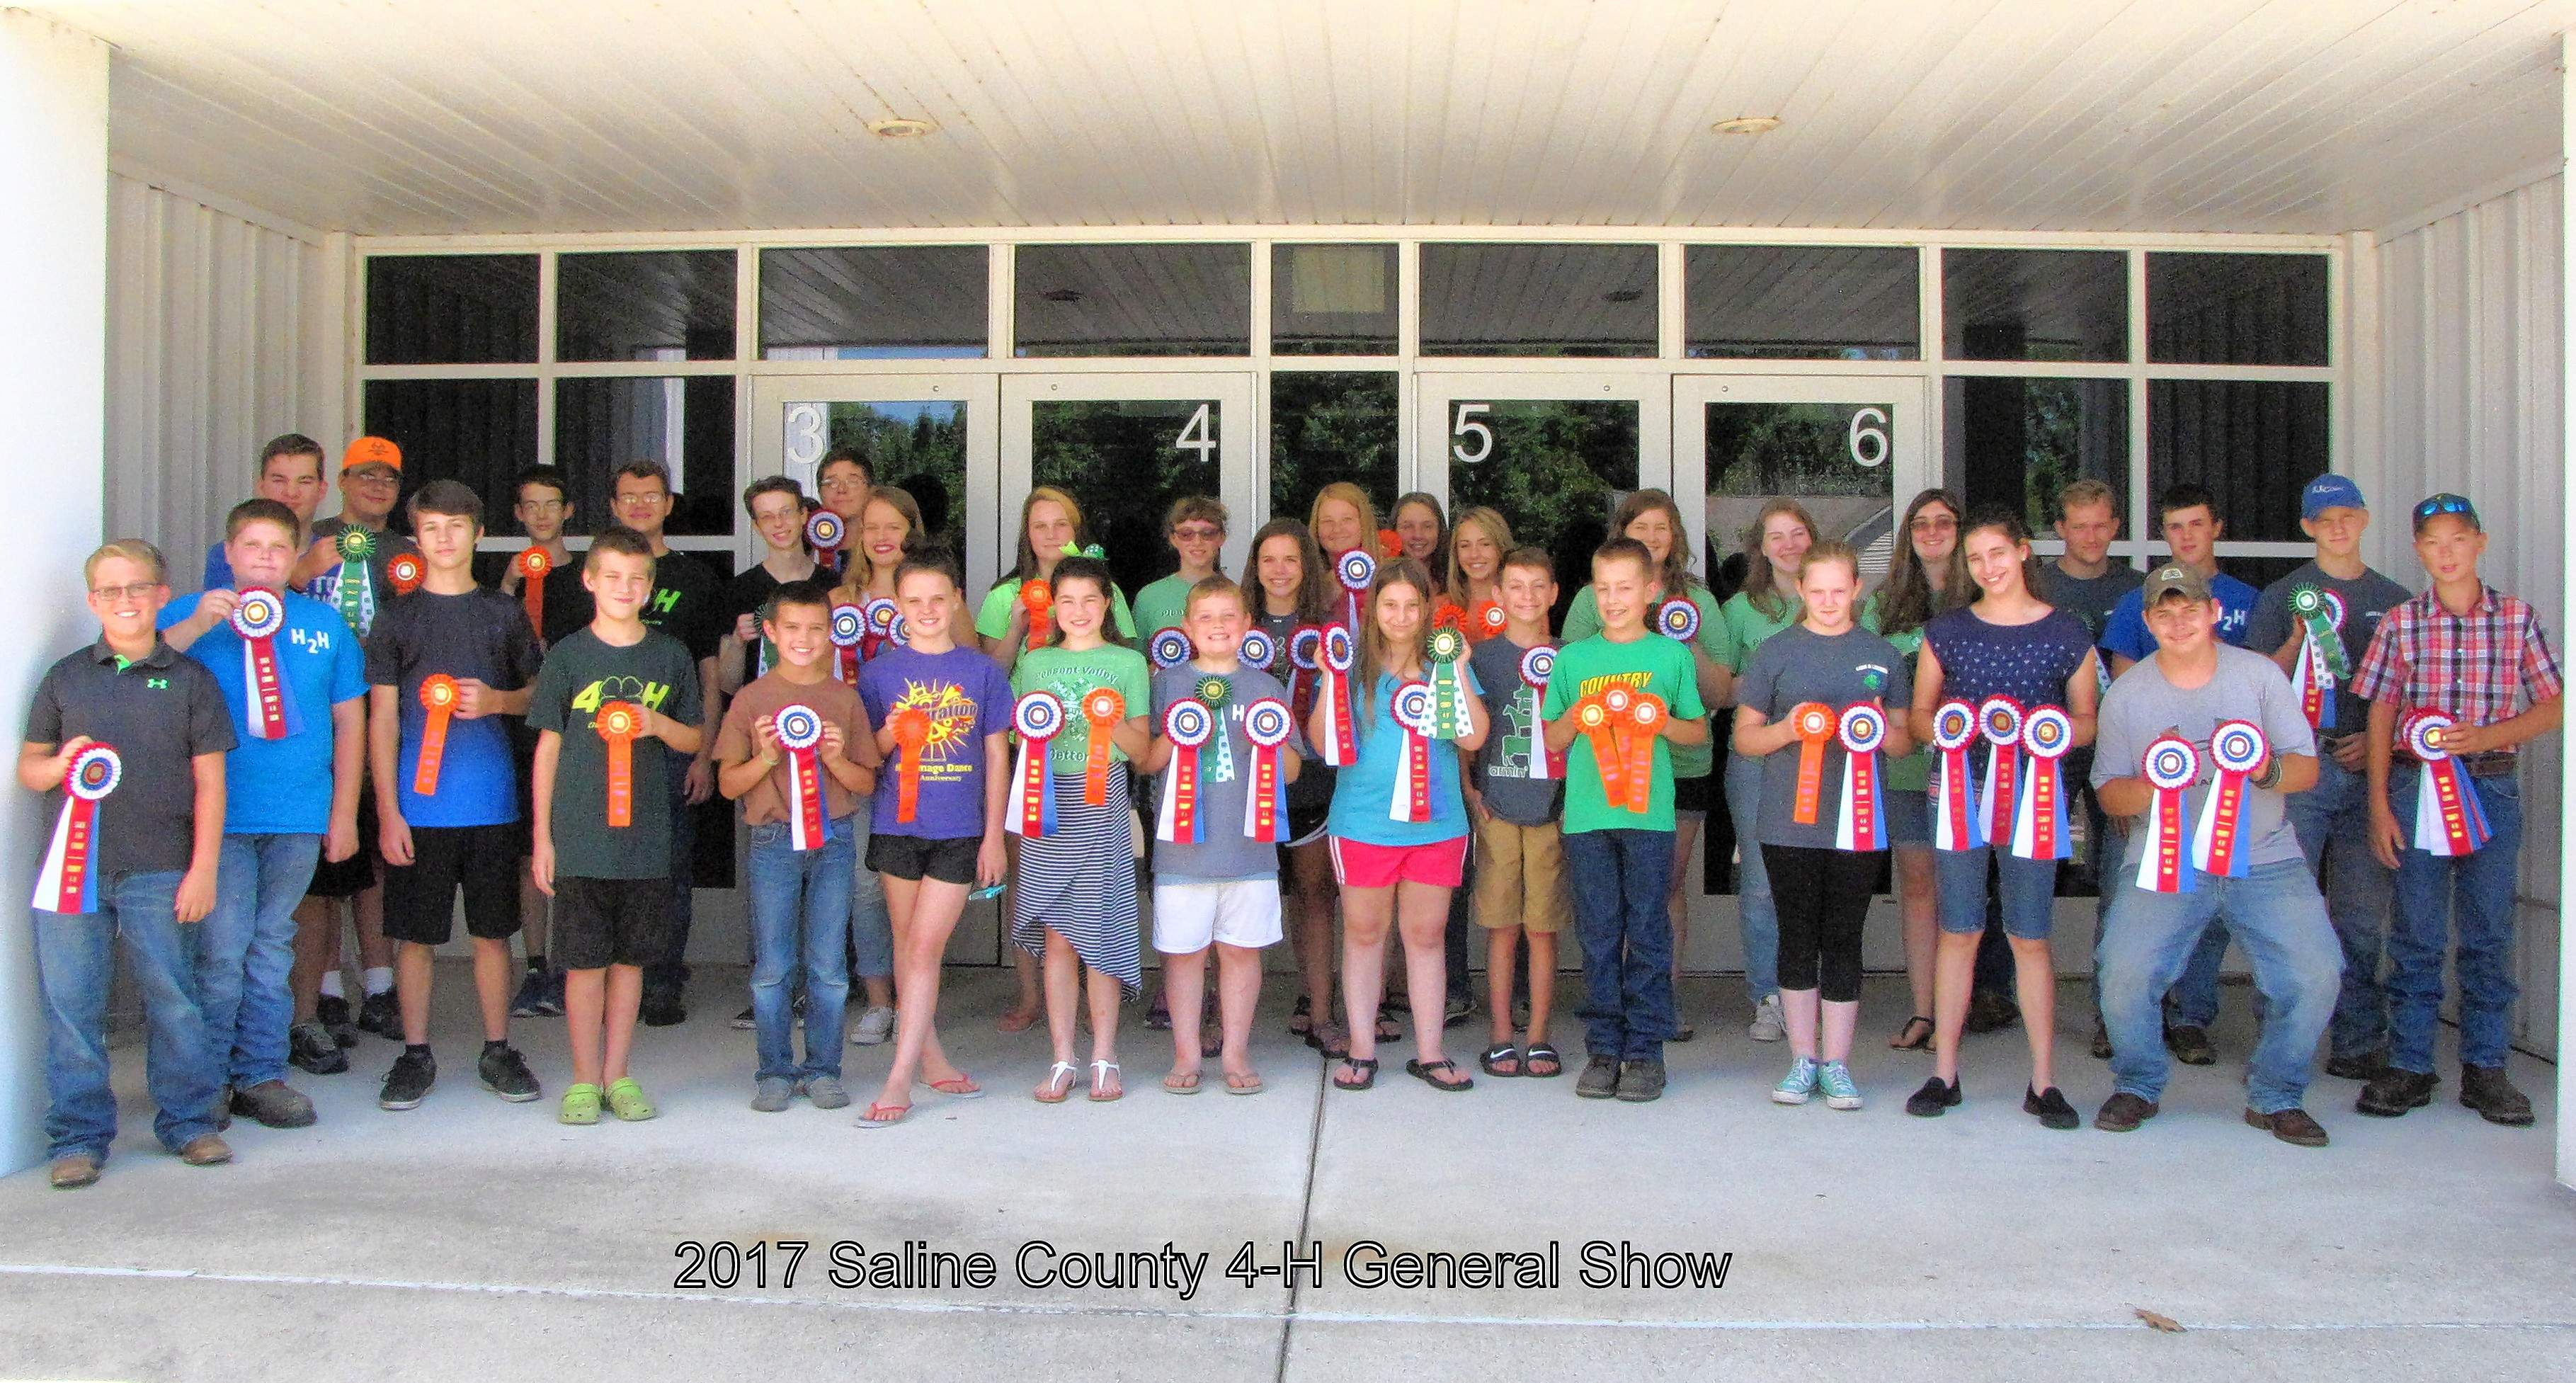 State fair, state fair alternate, and county champion ribbon winners are pictured at the Saline County 4-H General Show.